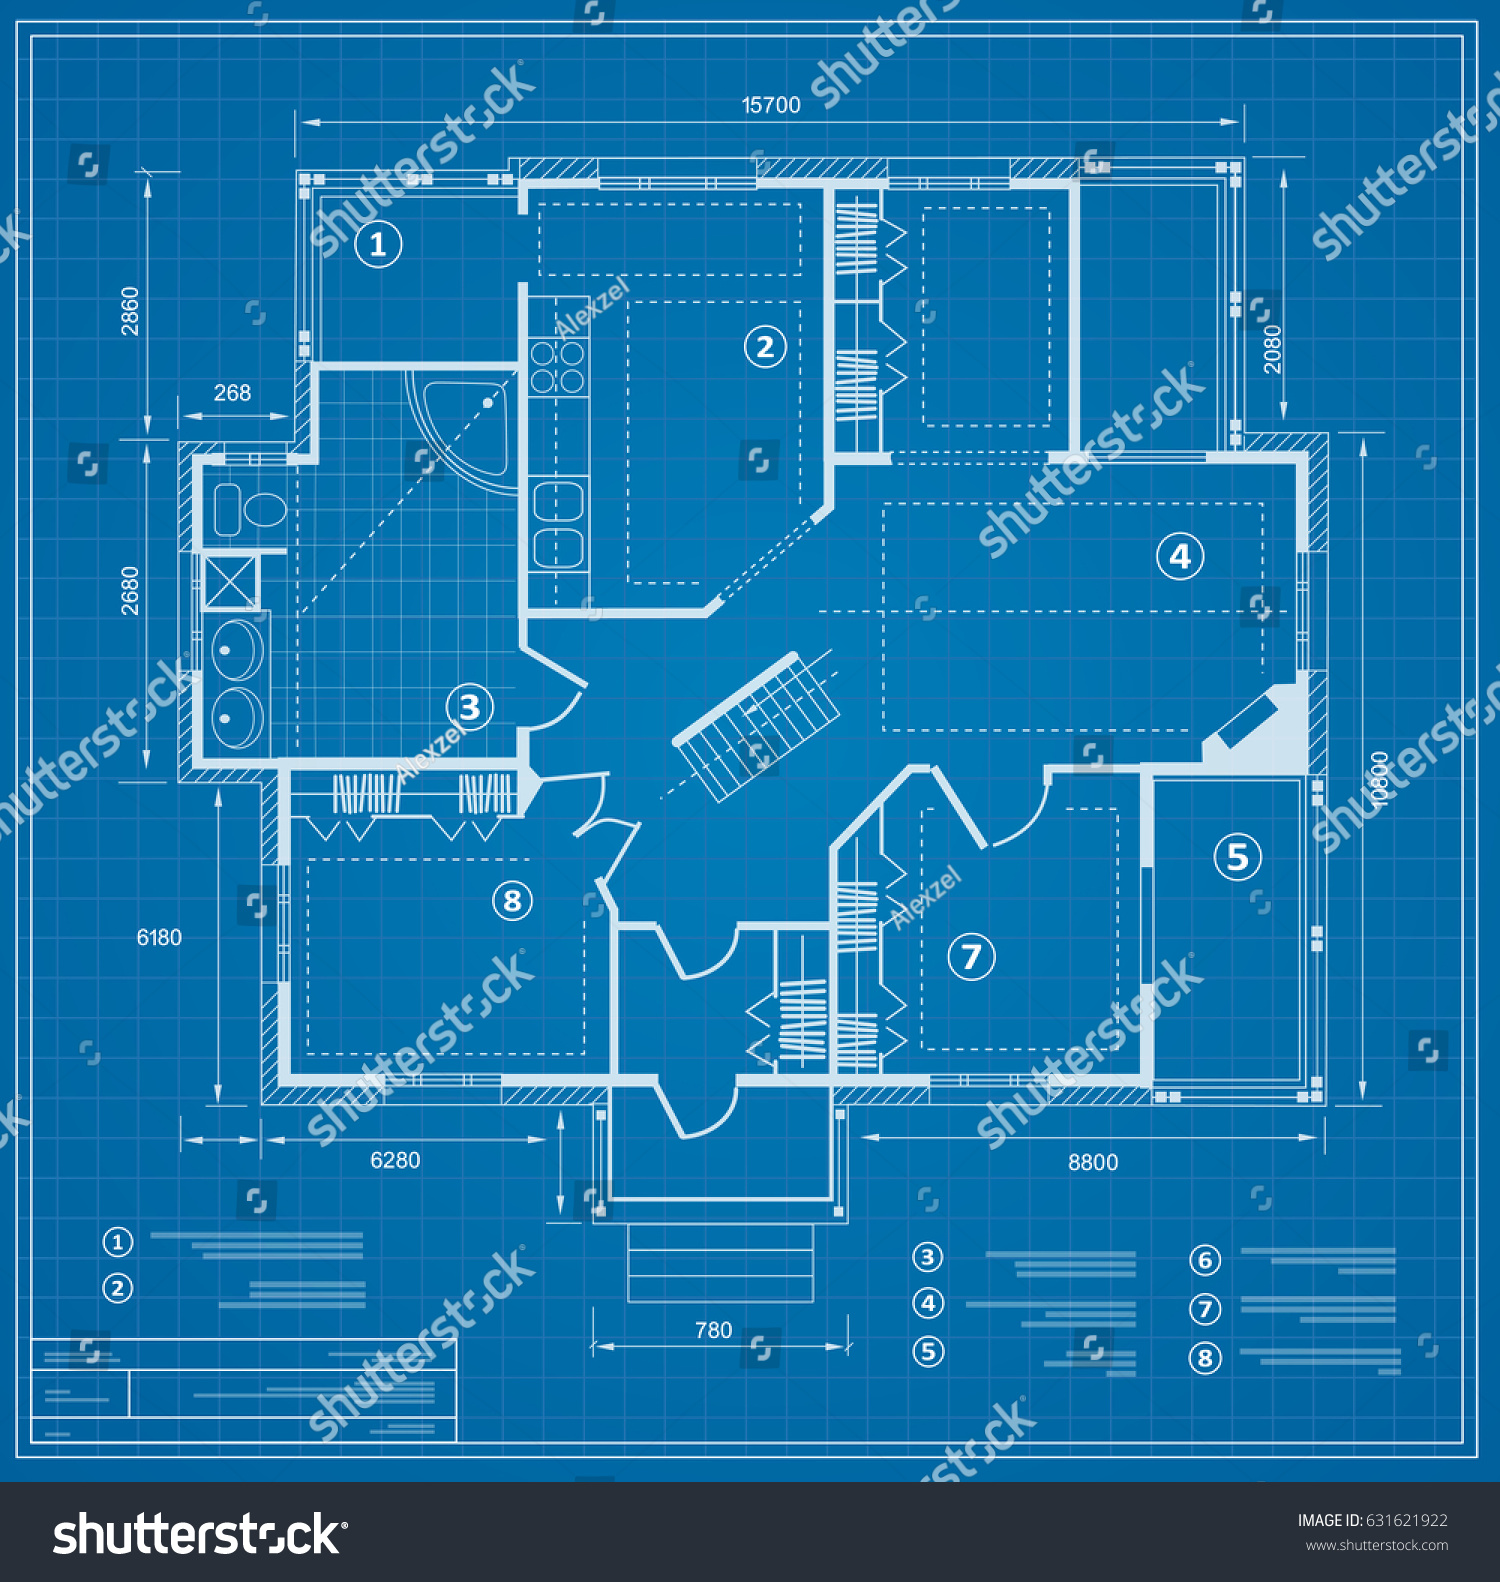 Blueprint house plan drawing figure jotting stock vector 631621922 blueprint house plan drawing figure of the jotting sketch of the construction and the industrial malvernweather